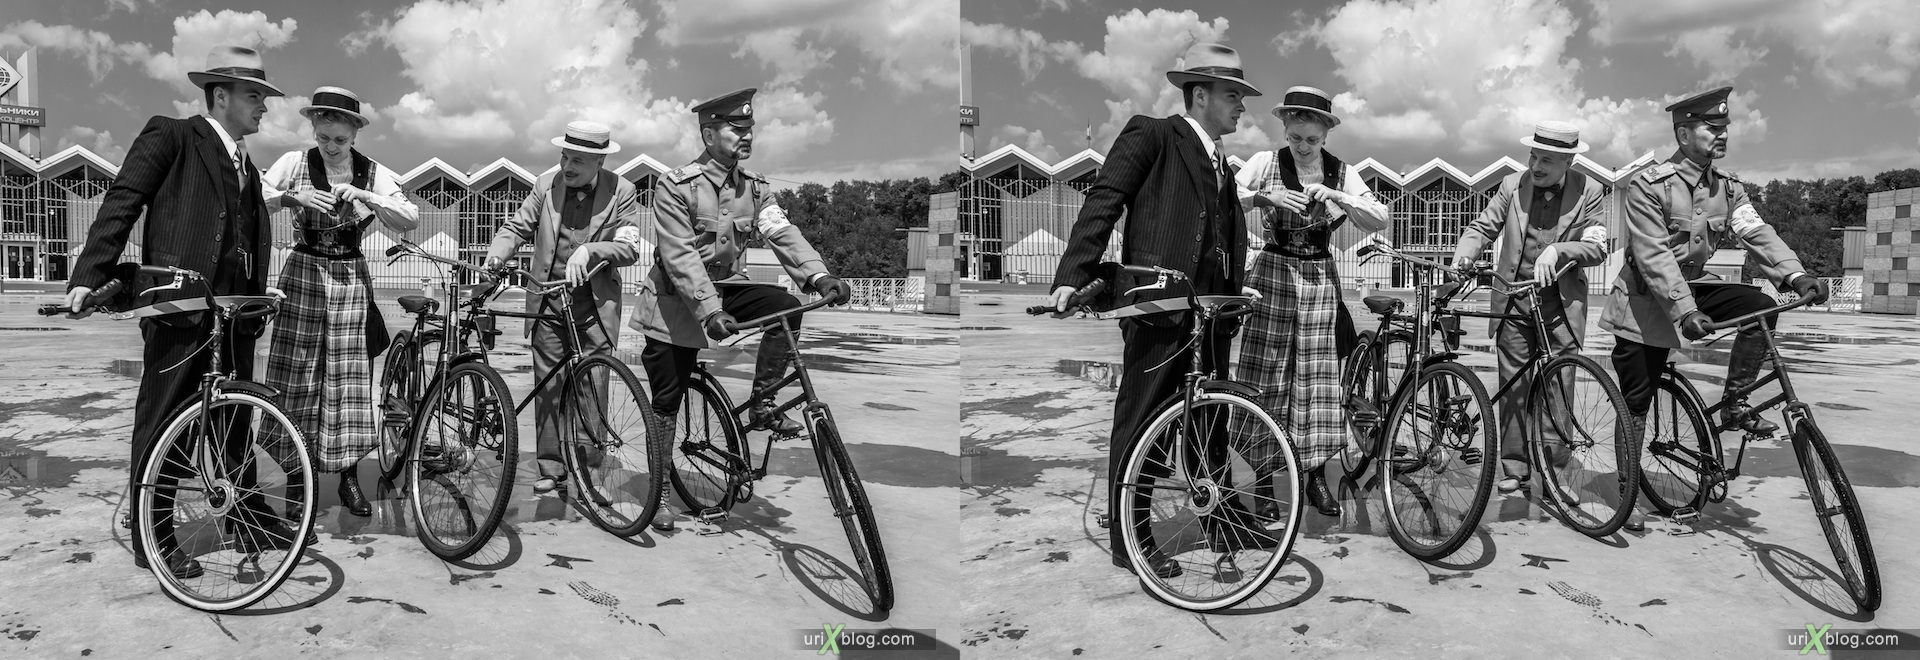 2013, old, ancient, bikes, bicycles, exhibition, rally, Moscow, Russia, 3D, stereo pair, cross-eyed, crossview, cross view stereo pair, stereoscopic